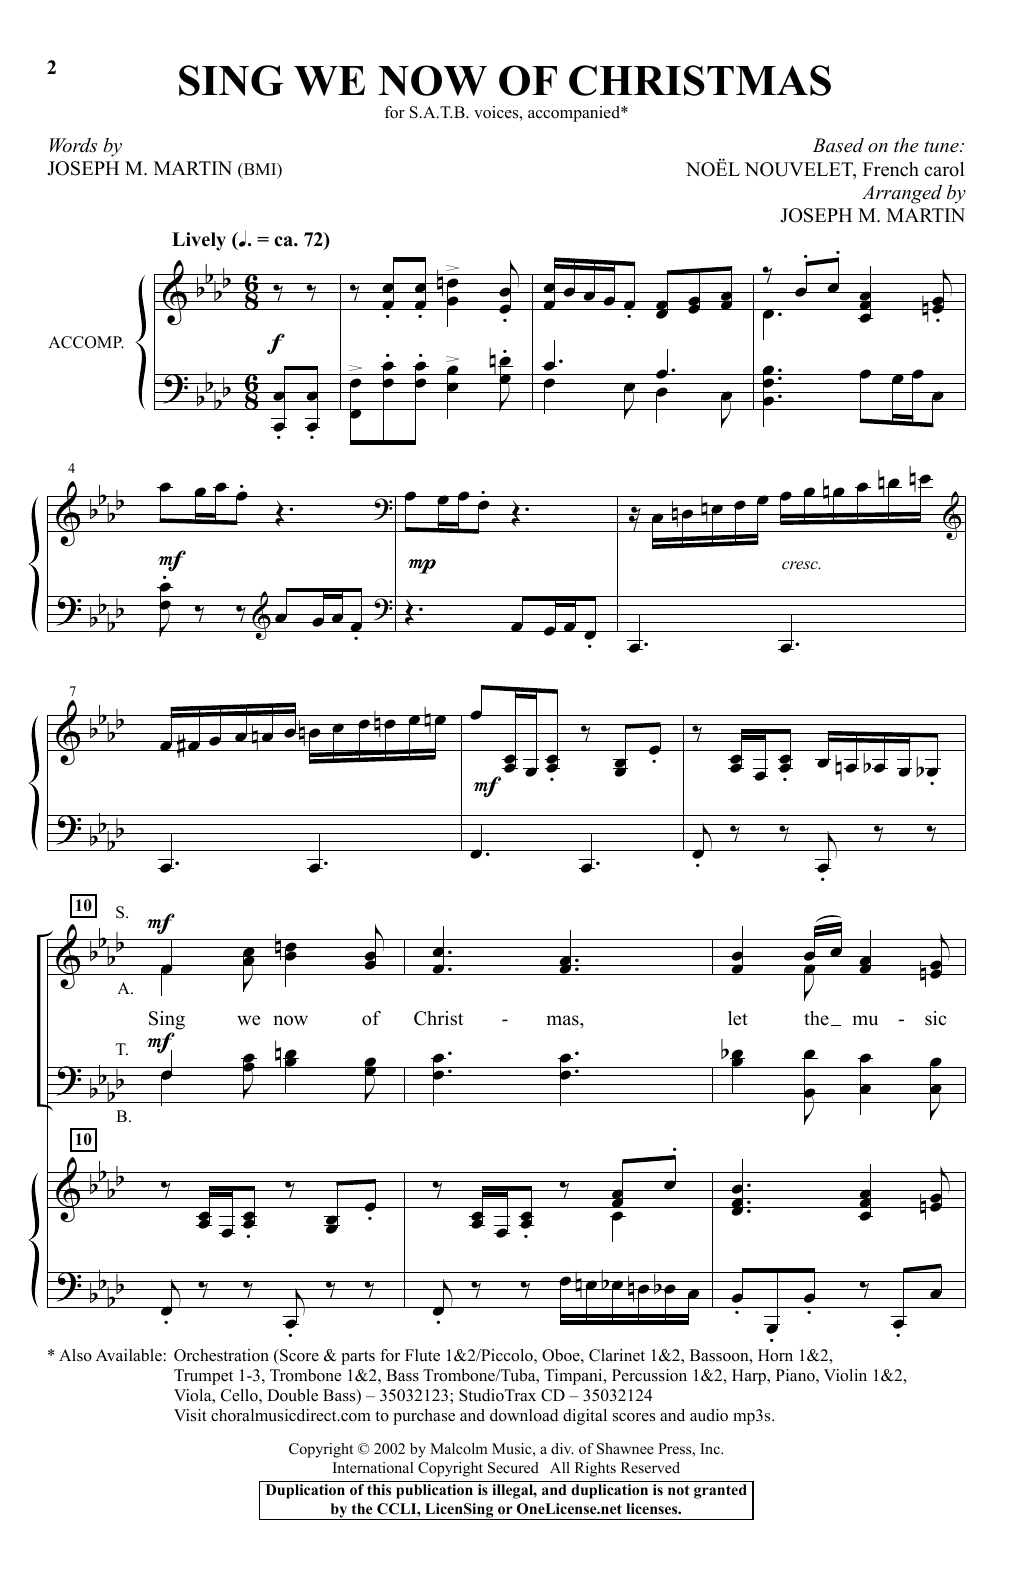 Joseph M. Martin Sing We Now Of Christmas sheet music notes and chords. Download Printable PDF.